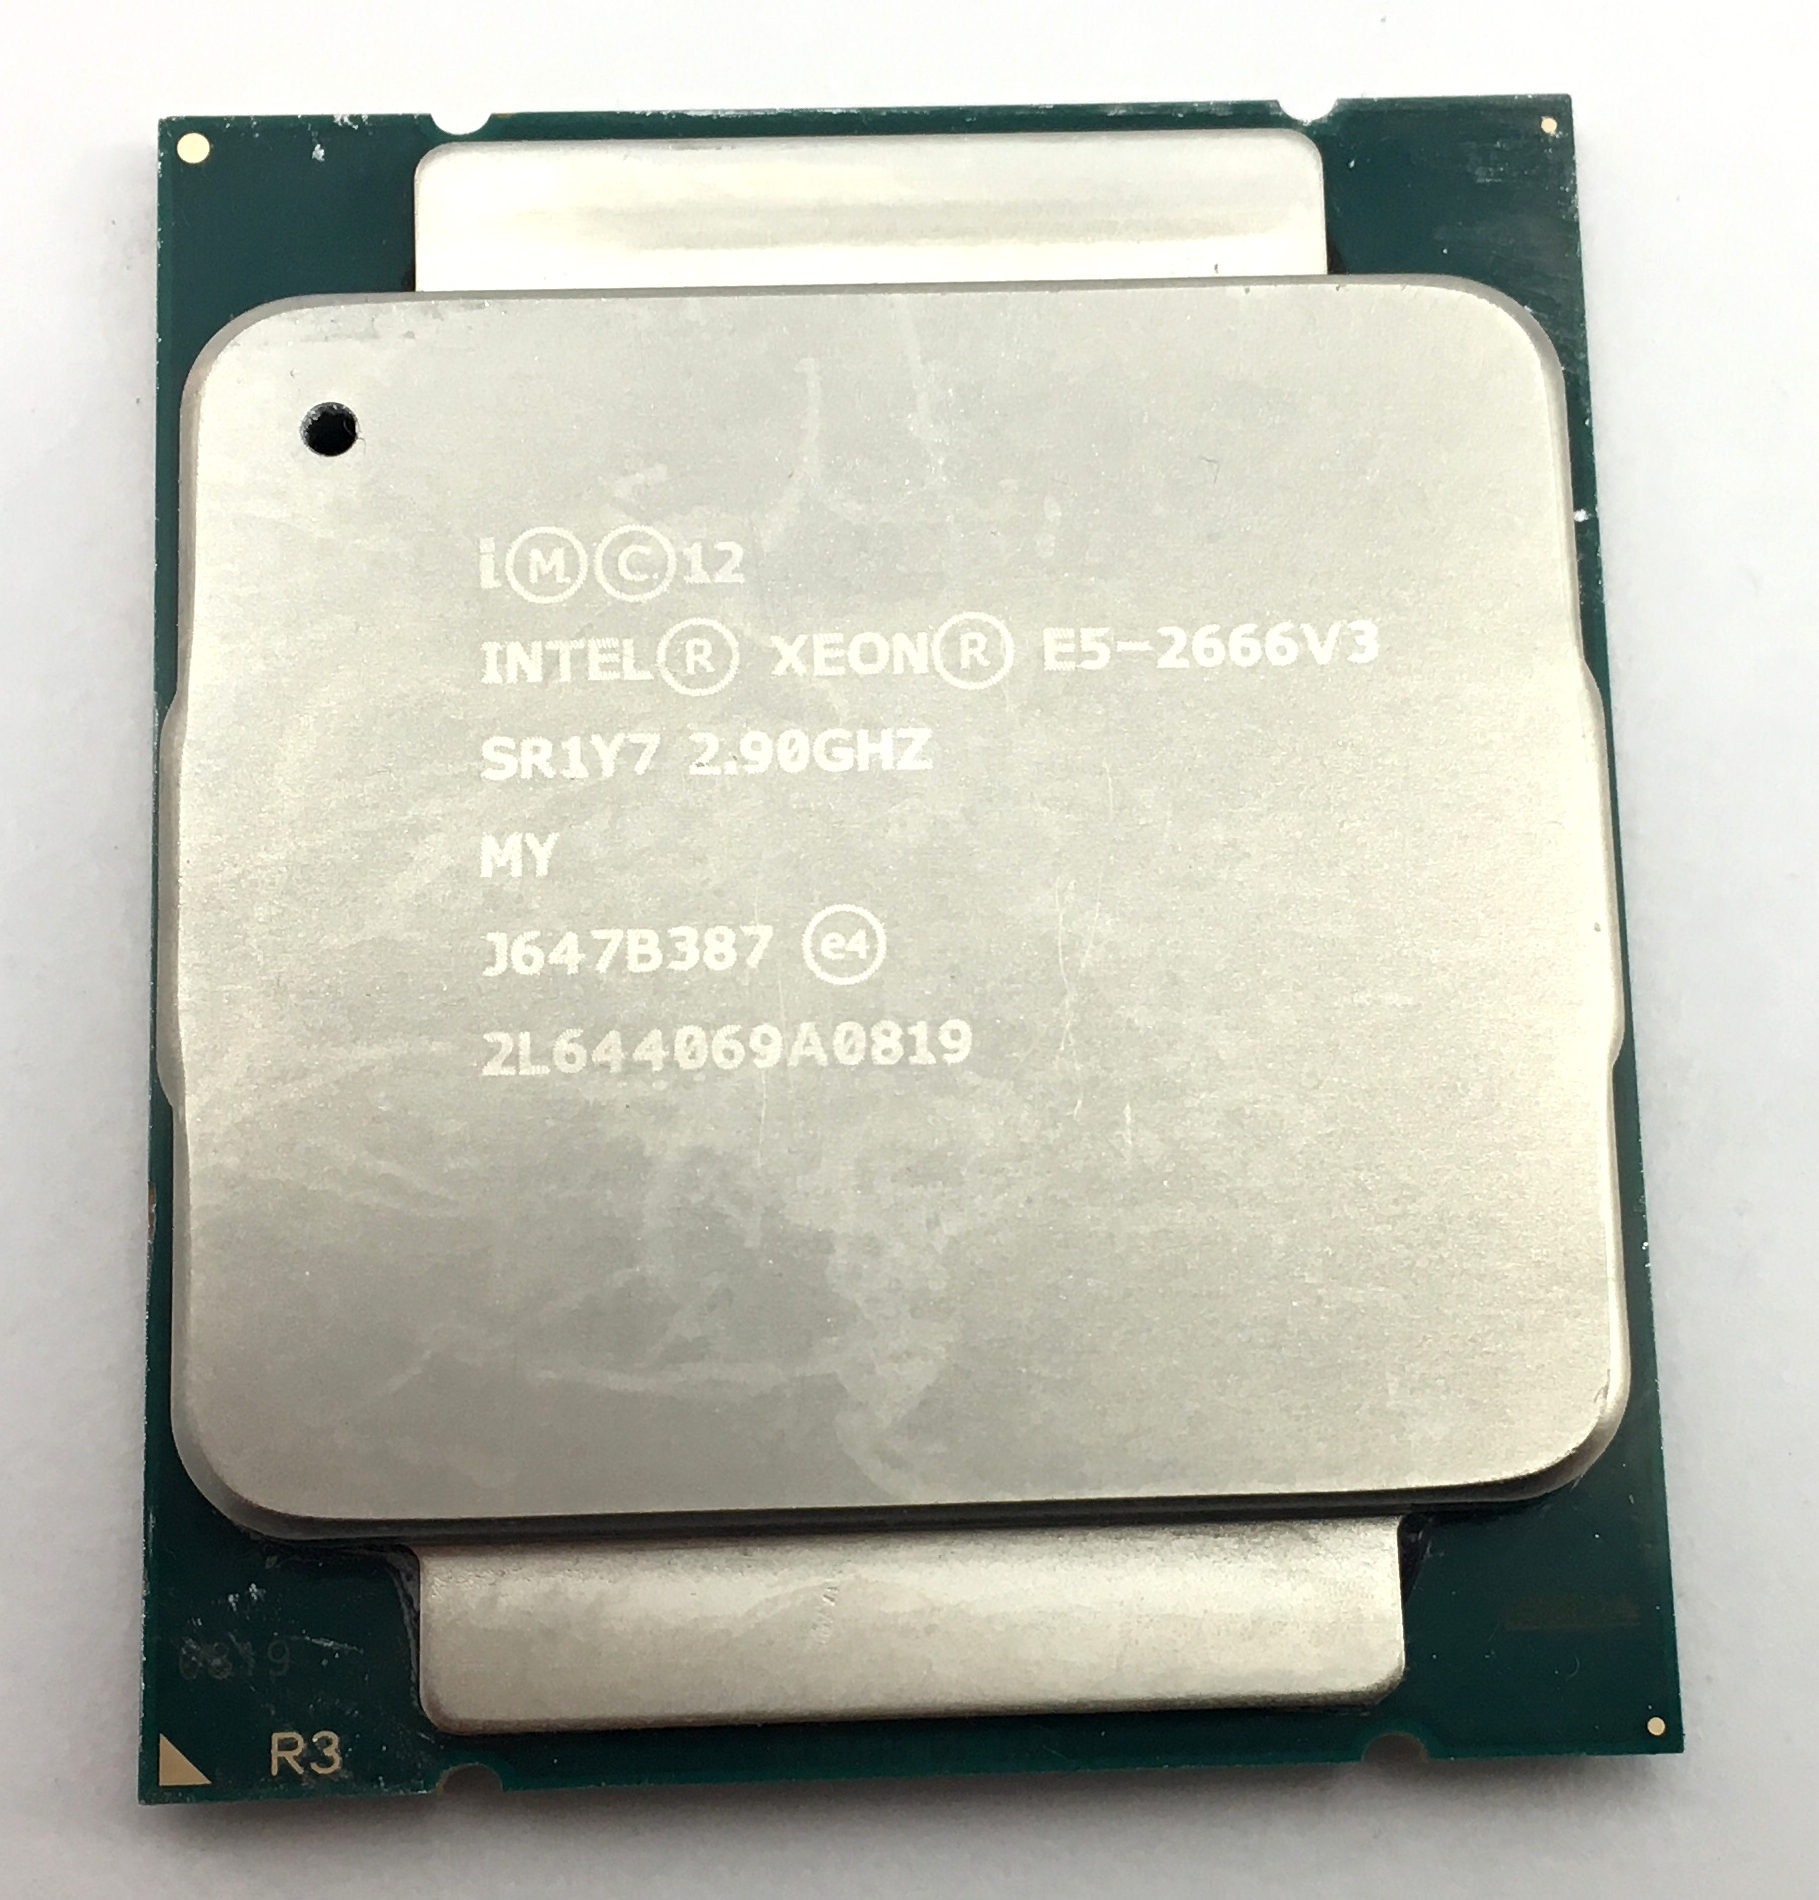 INTEL XEON E5-2666V3 2.9GHZ 10CORE 25MB LGA2011-3 PROCESSOR (SR1Y7)